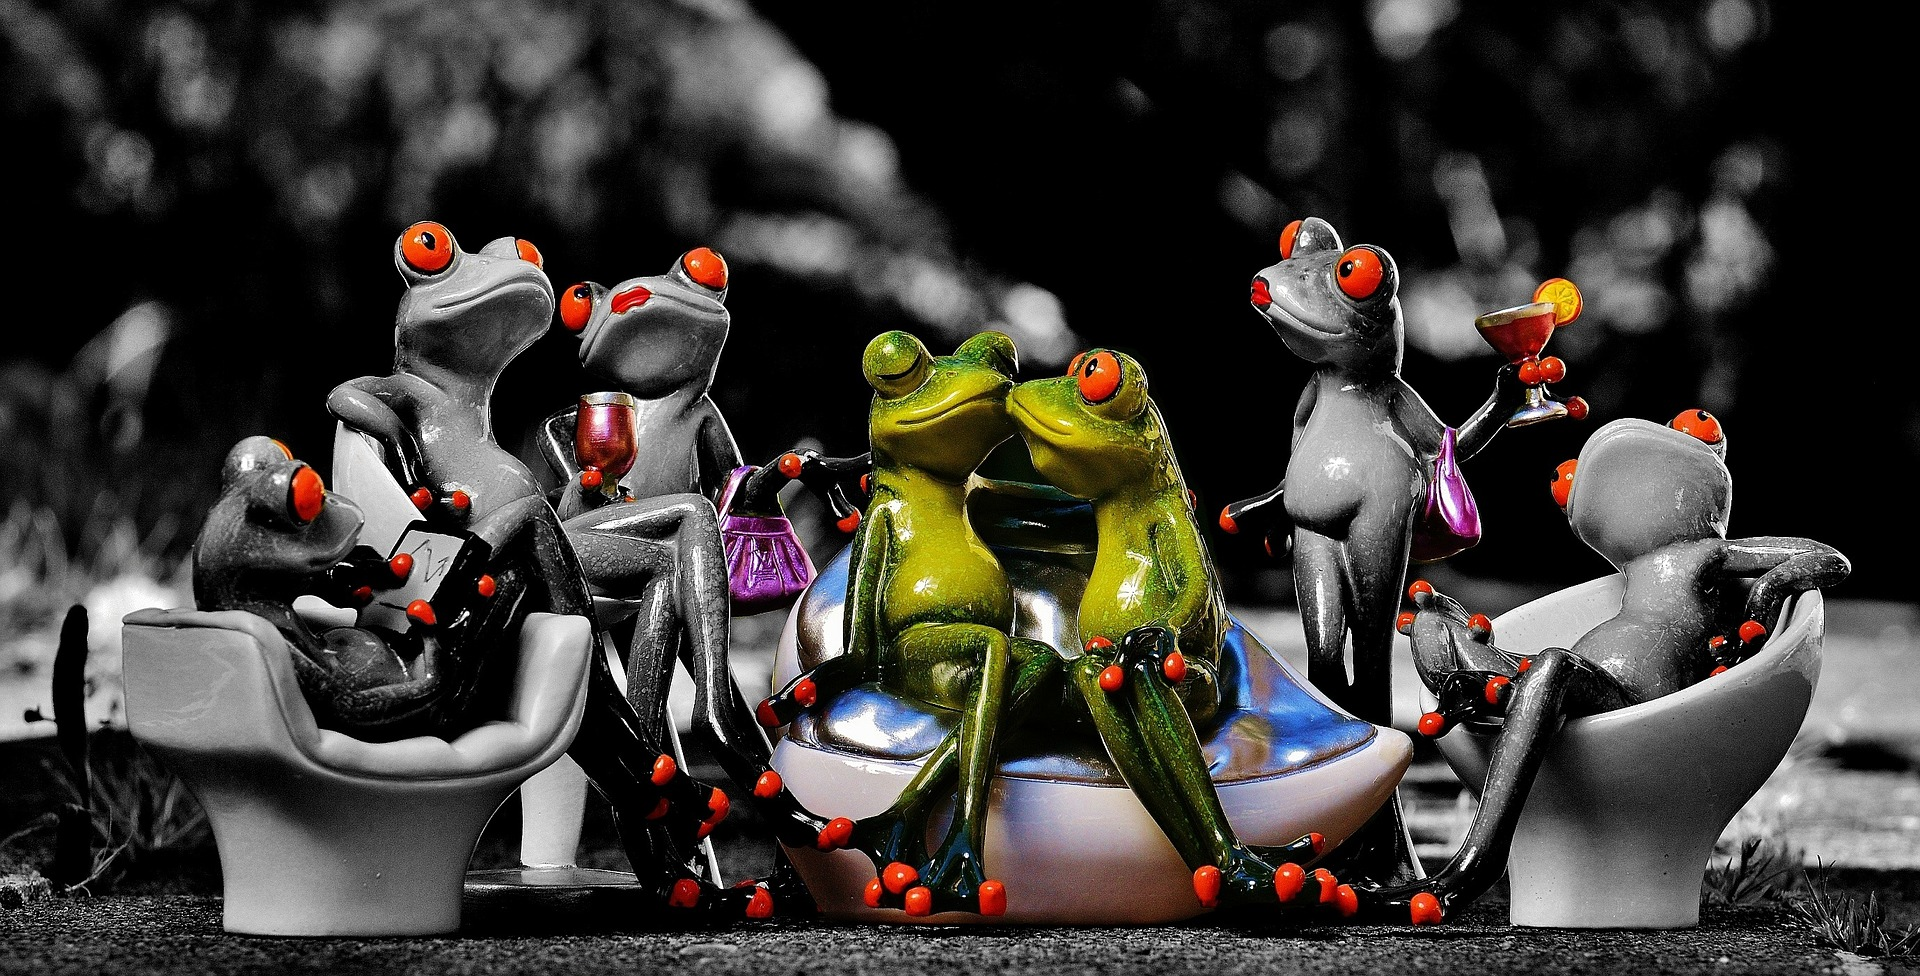 Frogs 1421183 1920